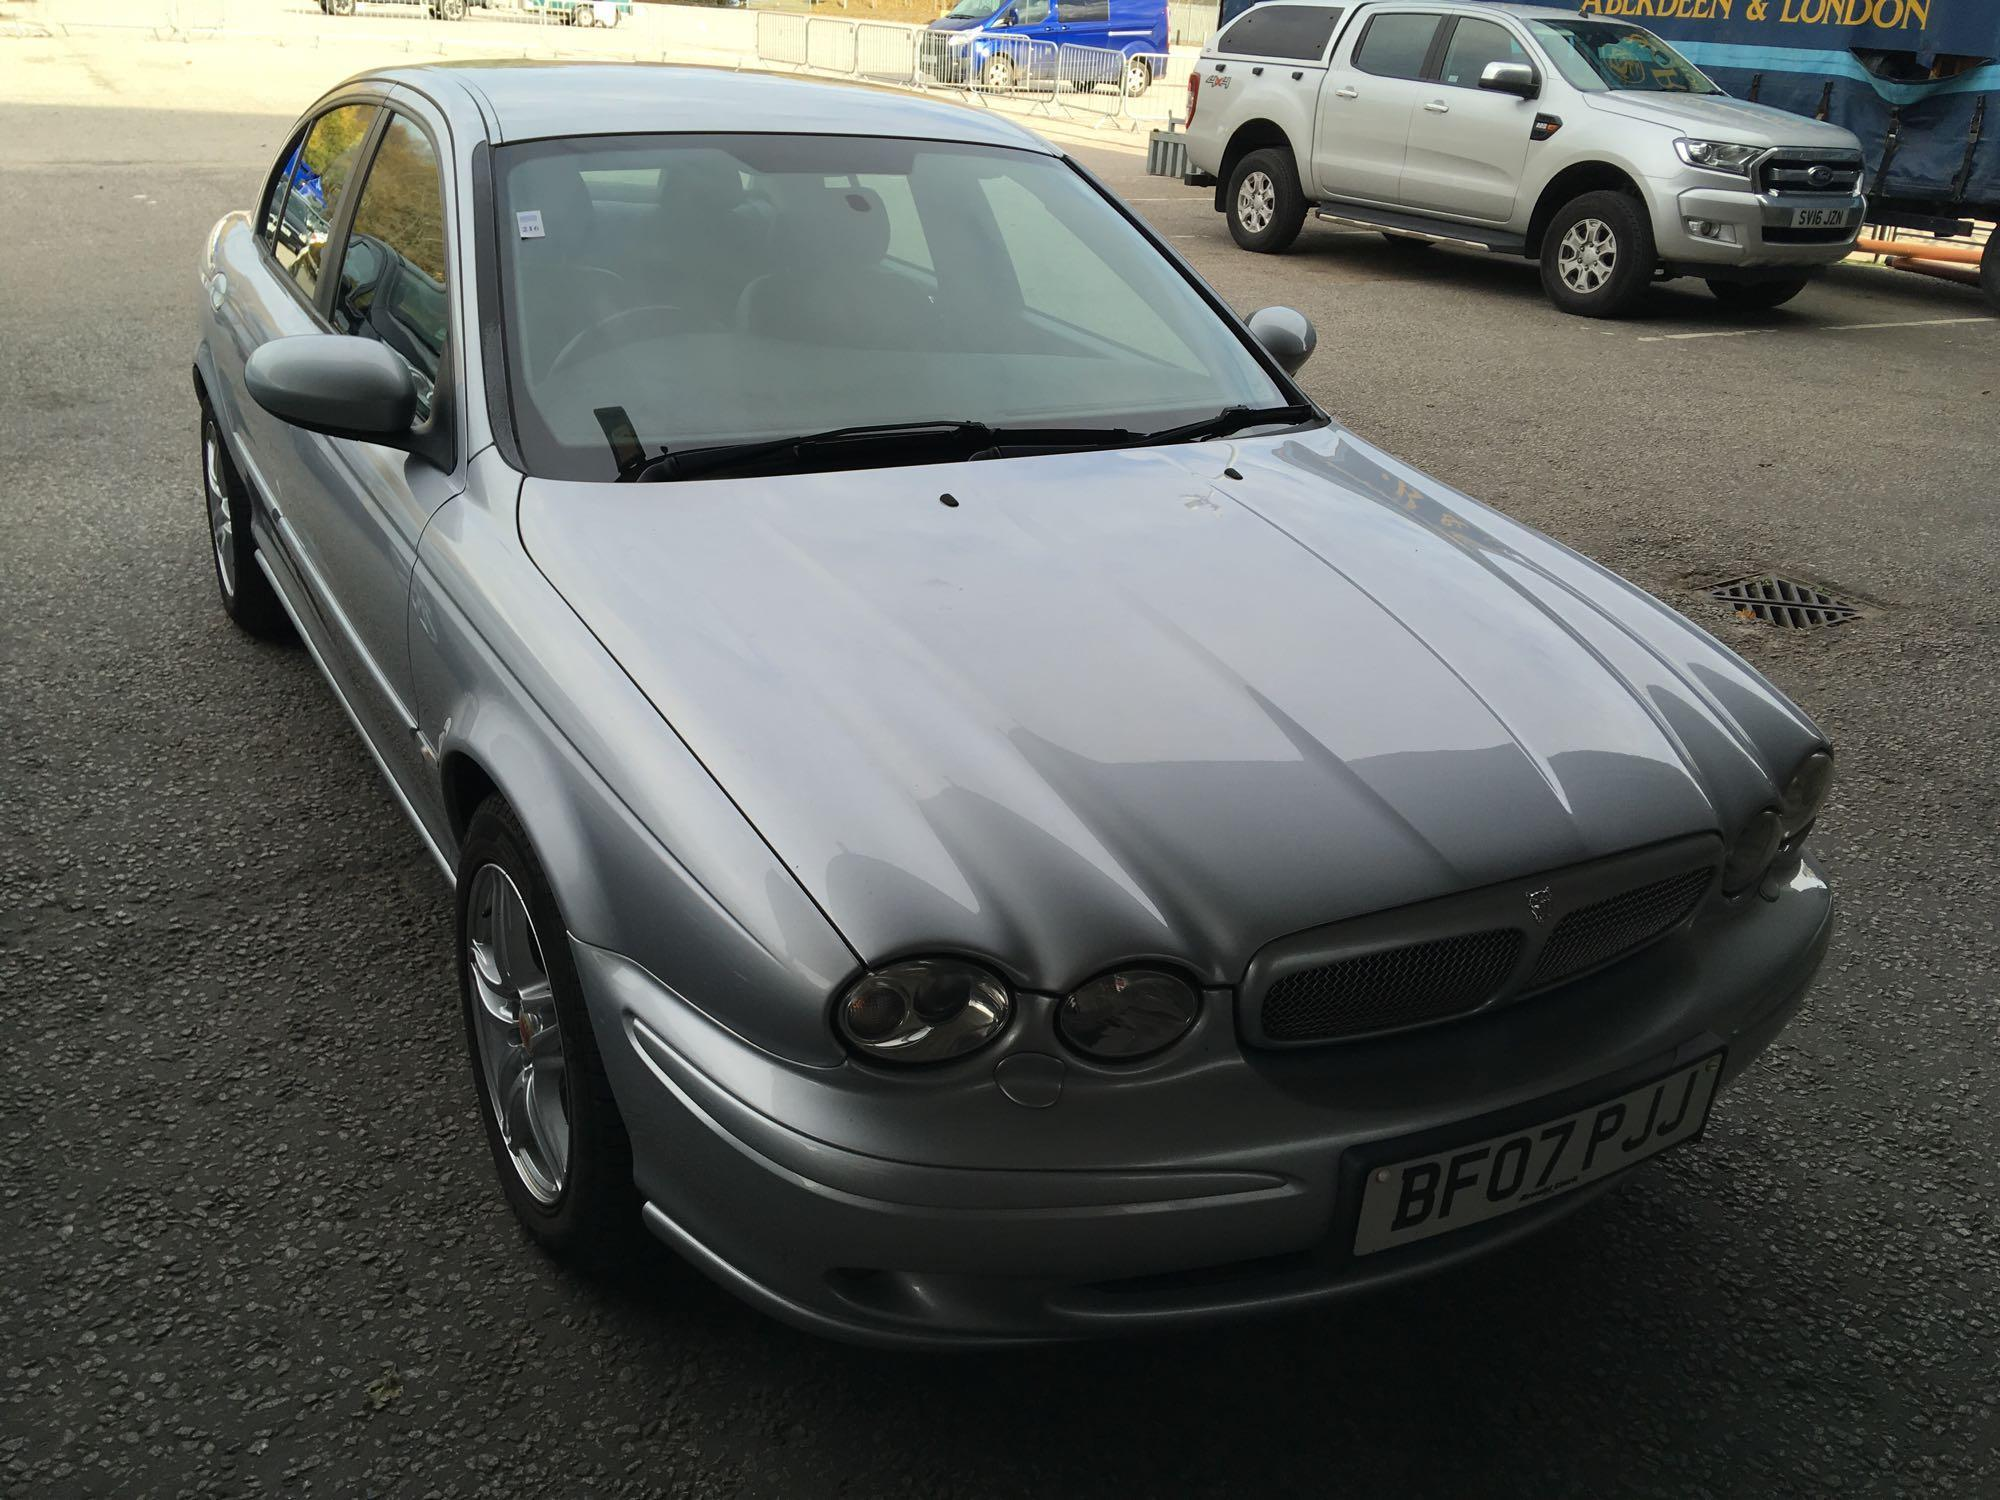 Lot 216 - Jaguar X-type V6 Sport Auto - 2496cc 4 Door